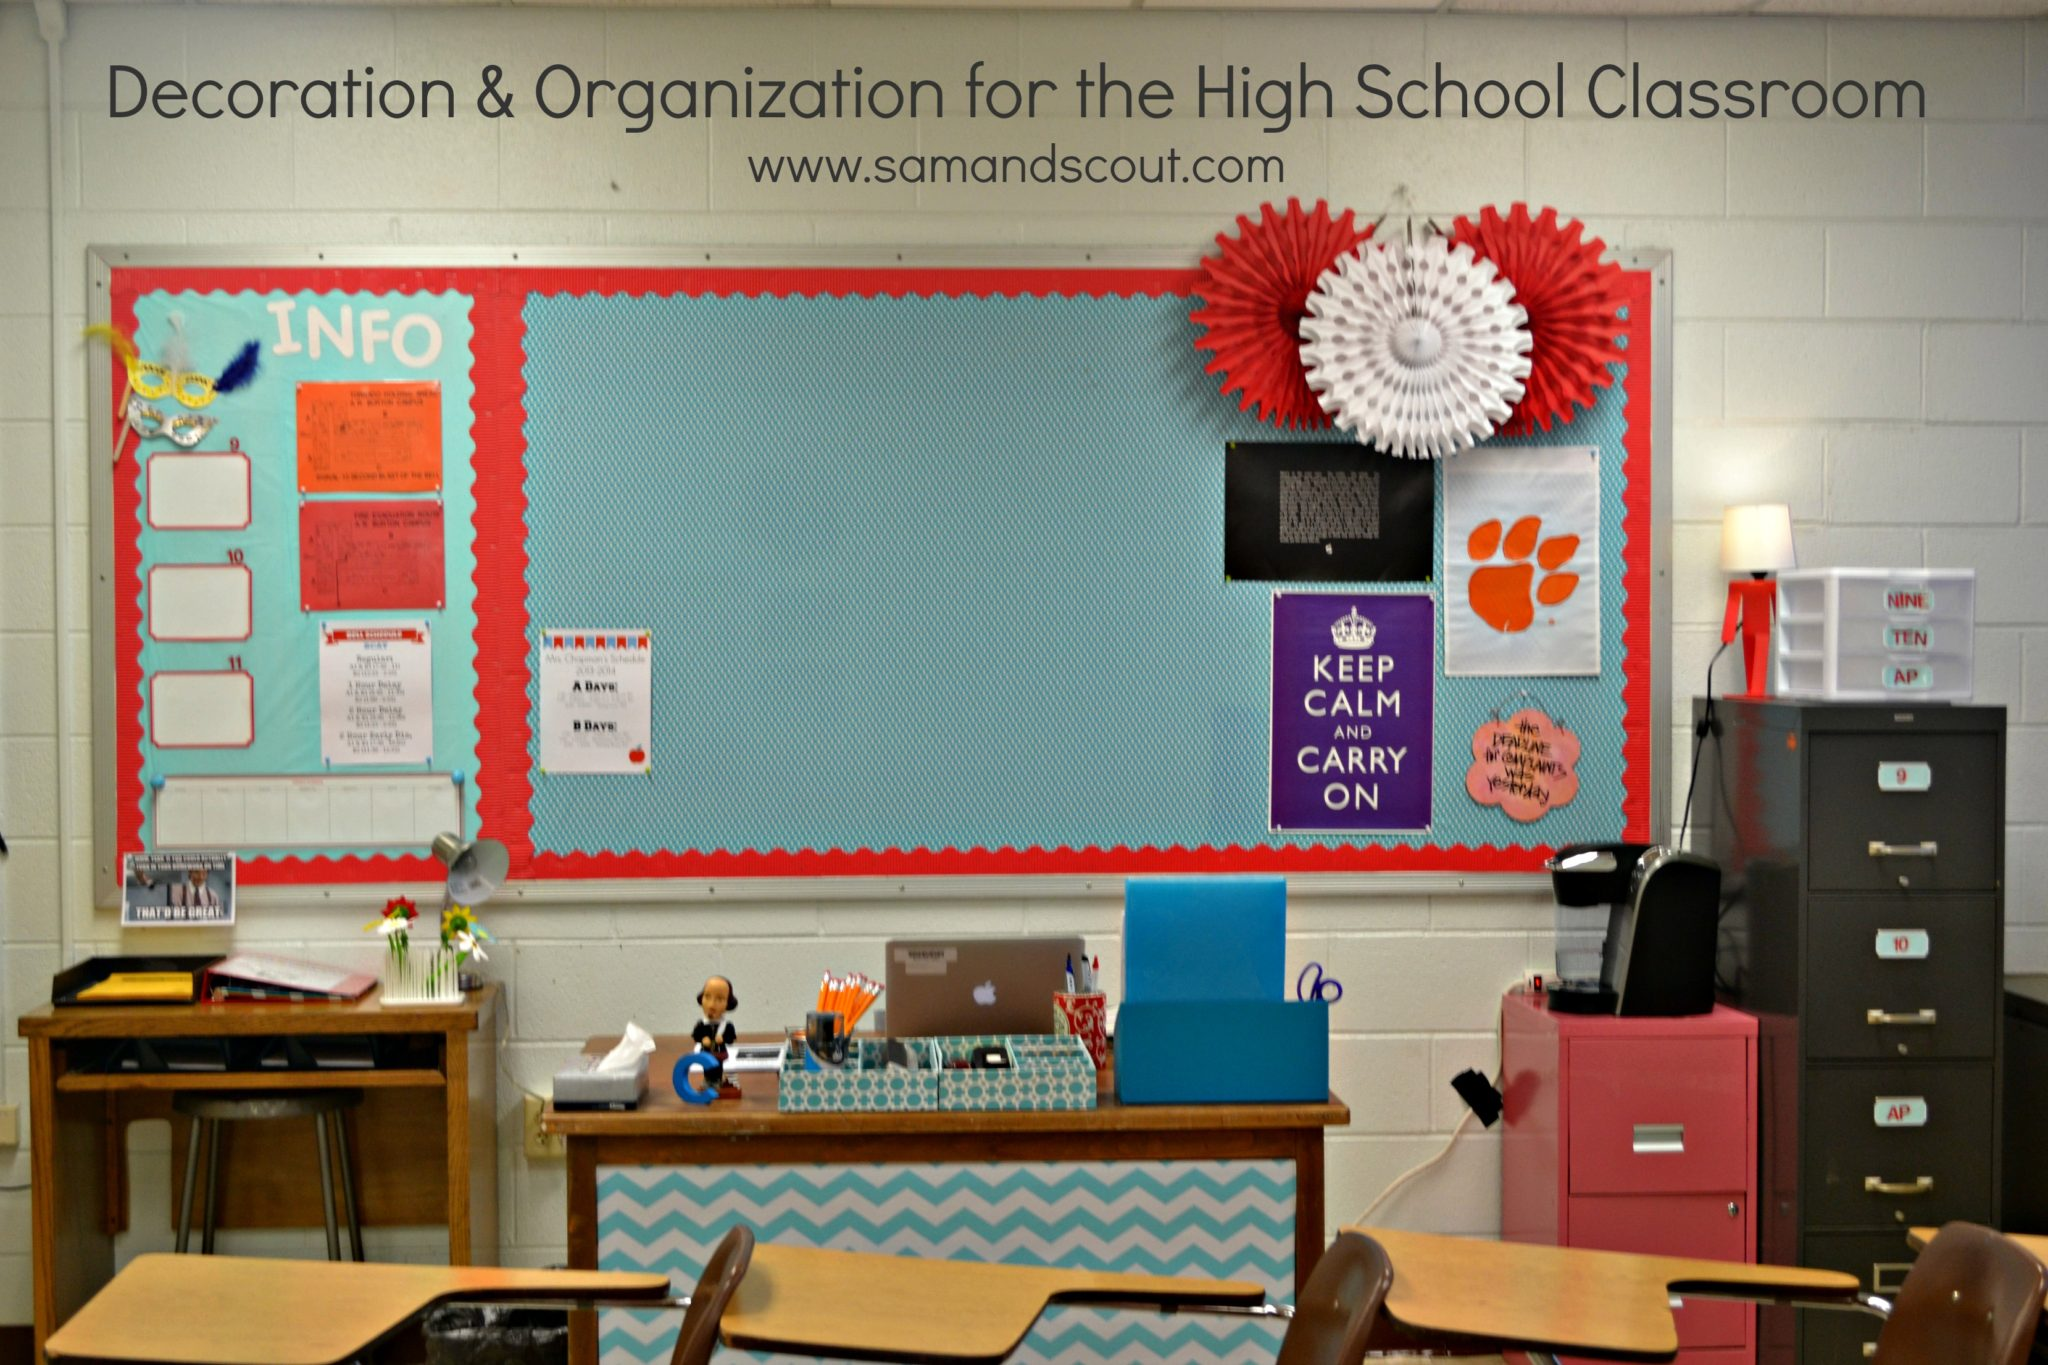 High School Classroom Decor Themes : Decoration organization for the high school classroom